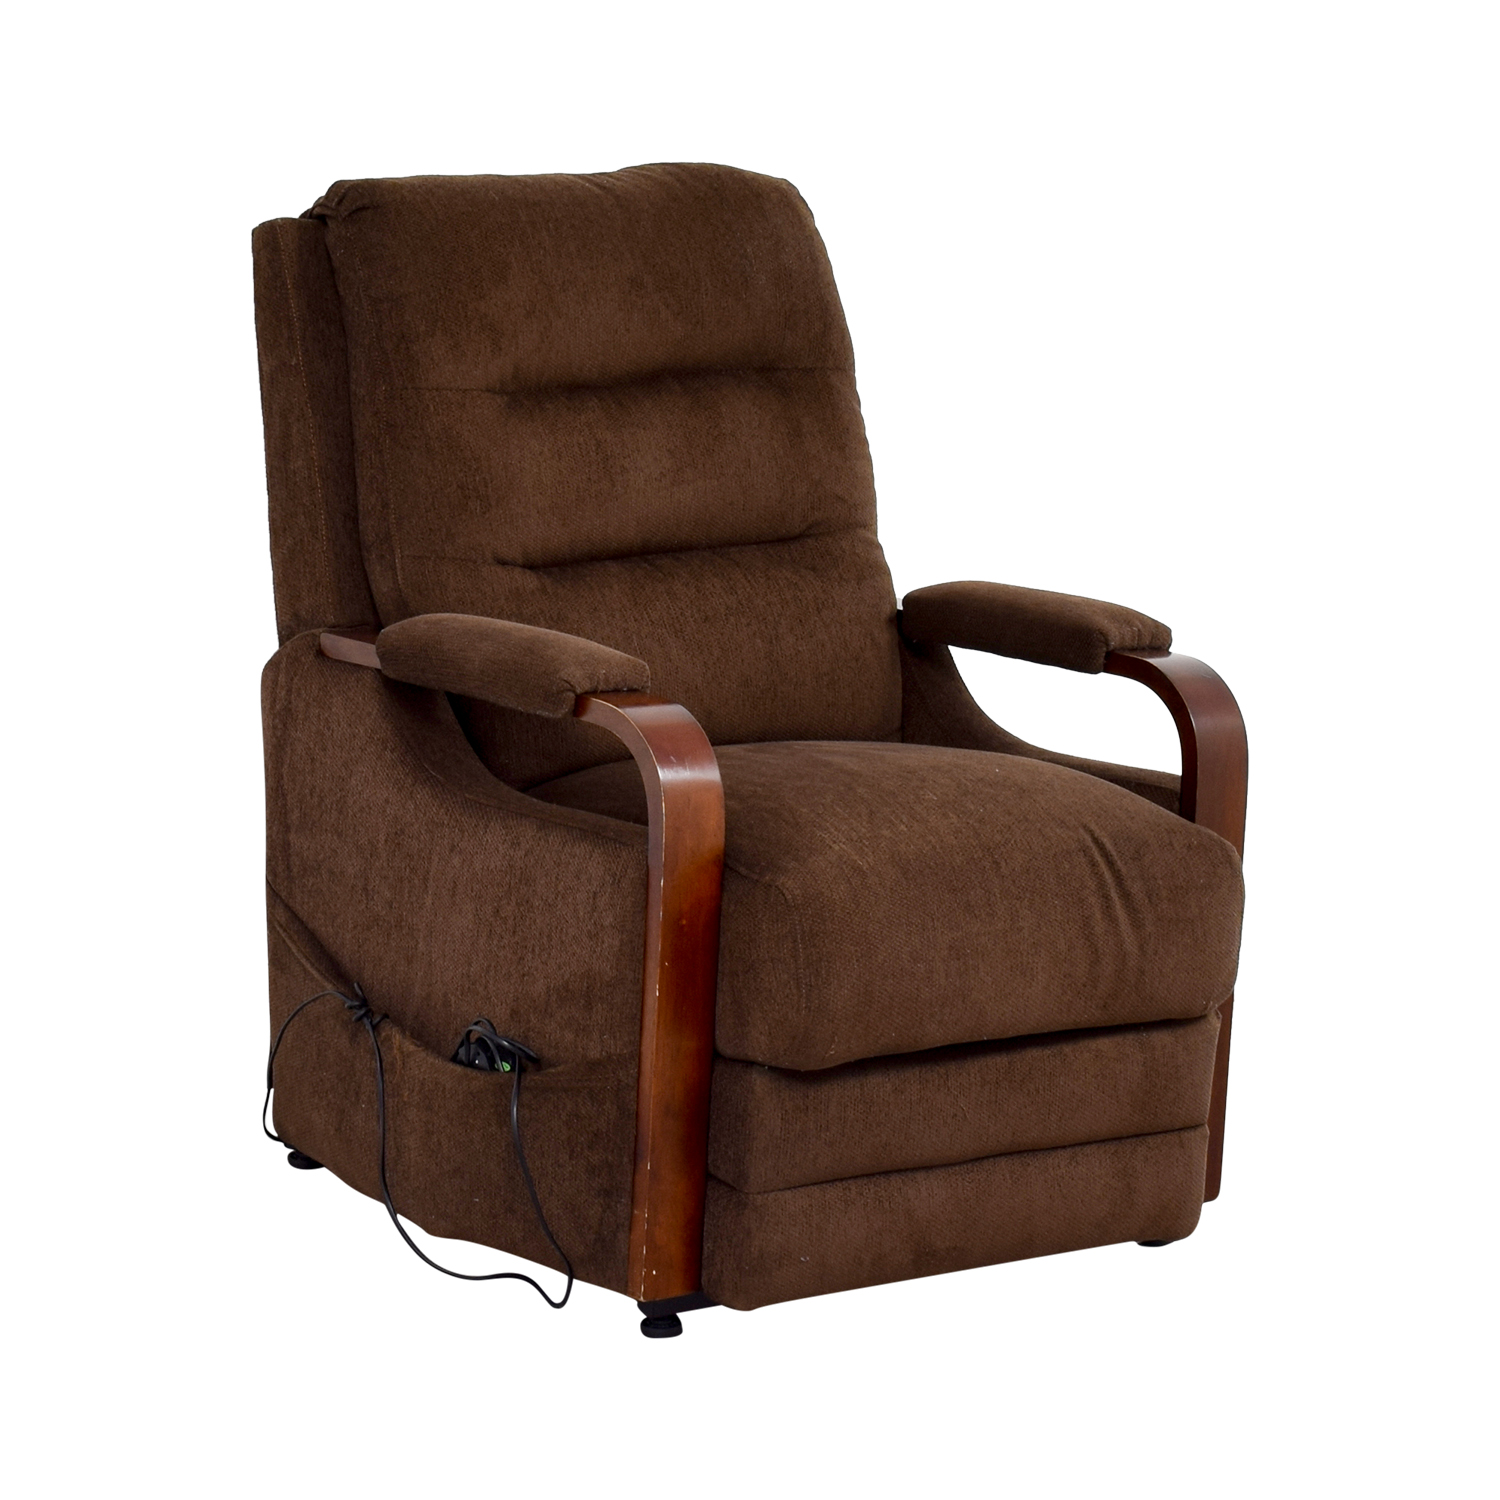 90 off bob 39 s furniture bob 39 s furniture brown recliner chair with remote chairs. Black Bedroom Furniture Sets. Home Design Ideas